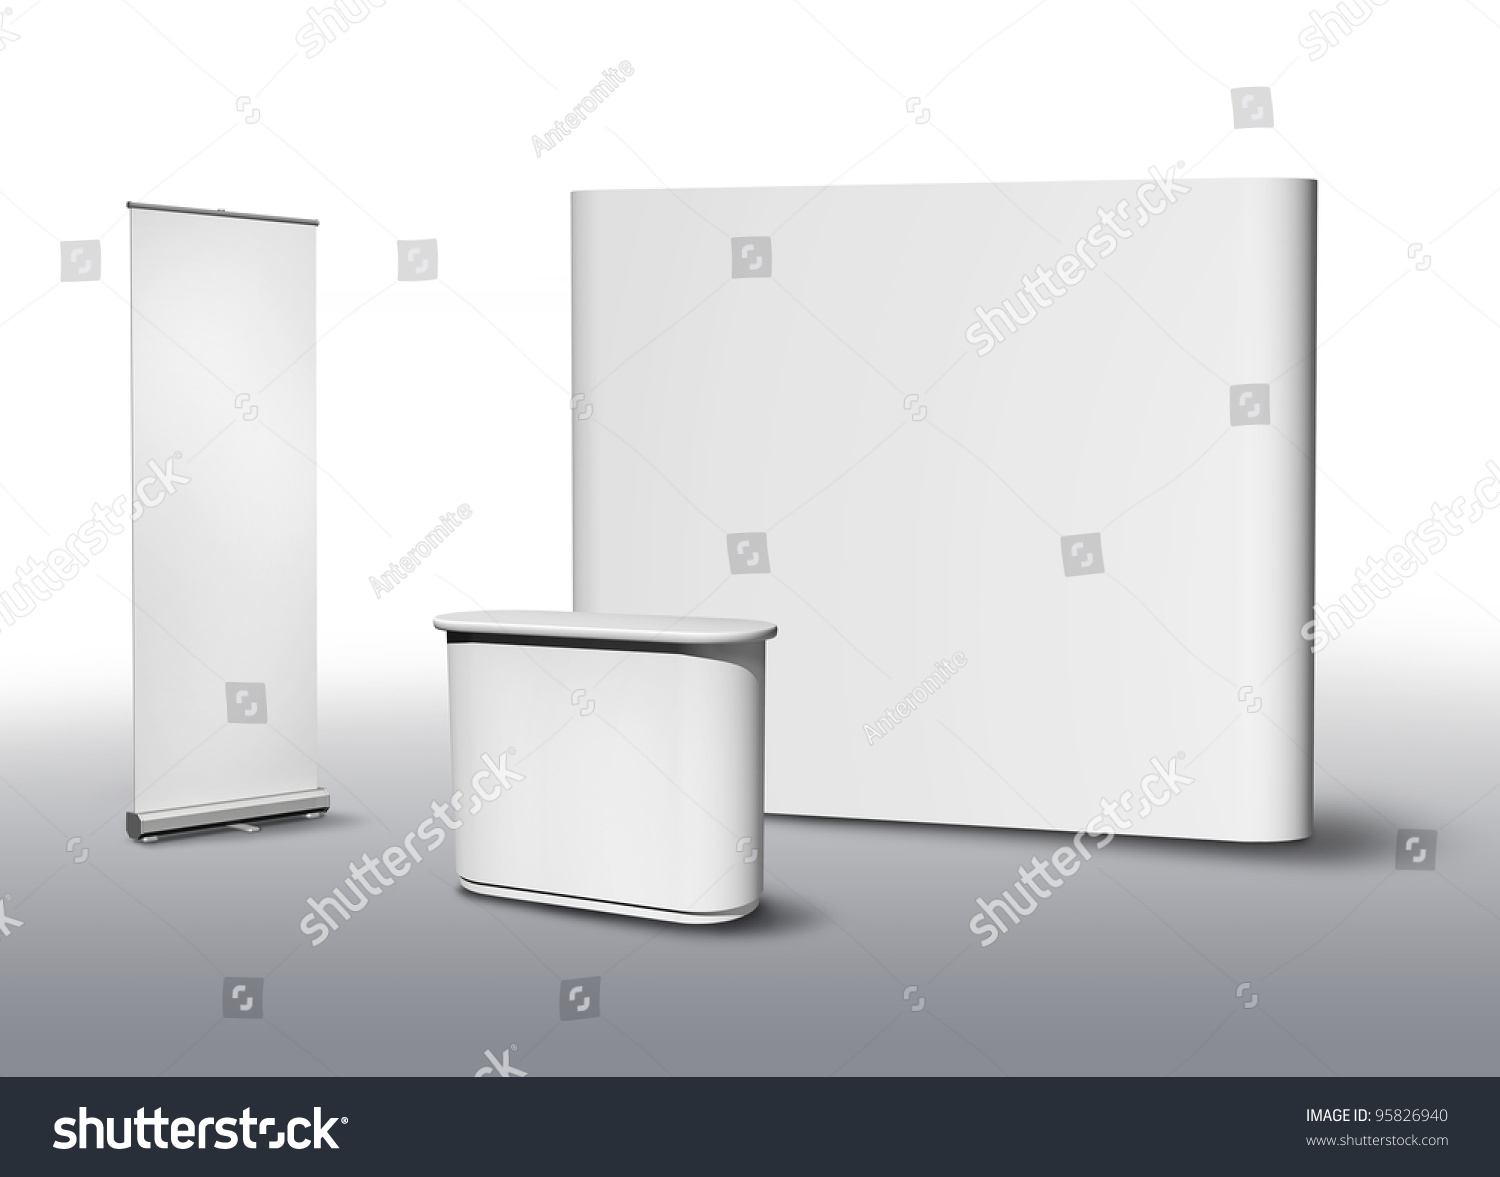 Exhibition Stand Application Form : Blank exhibition fair stand desk wall stock illustration